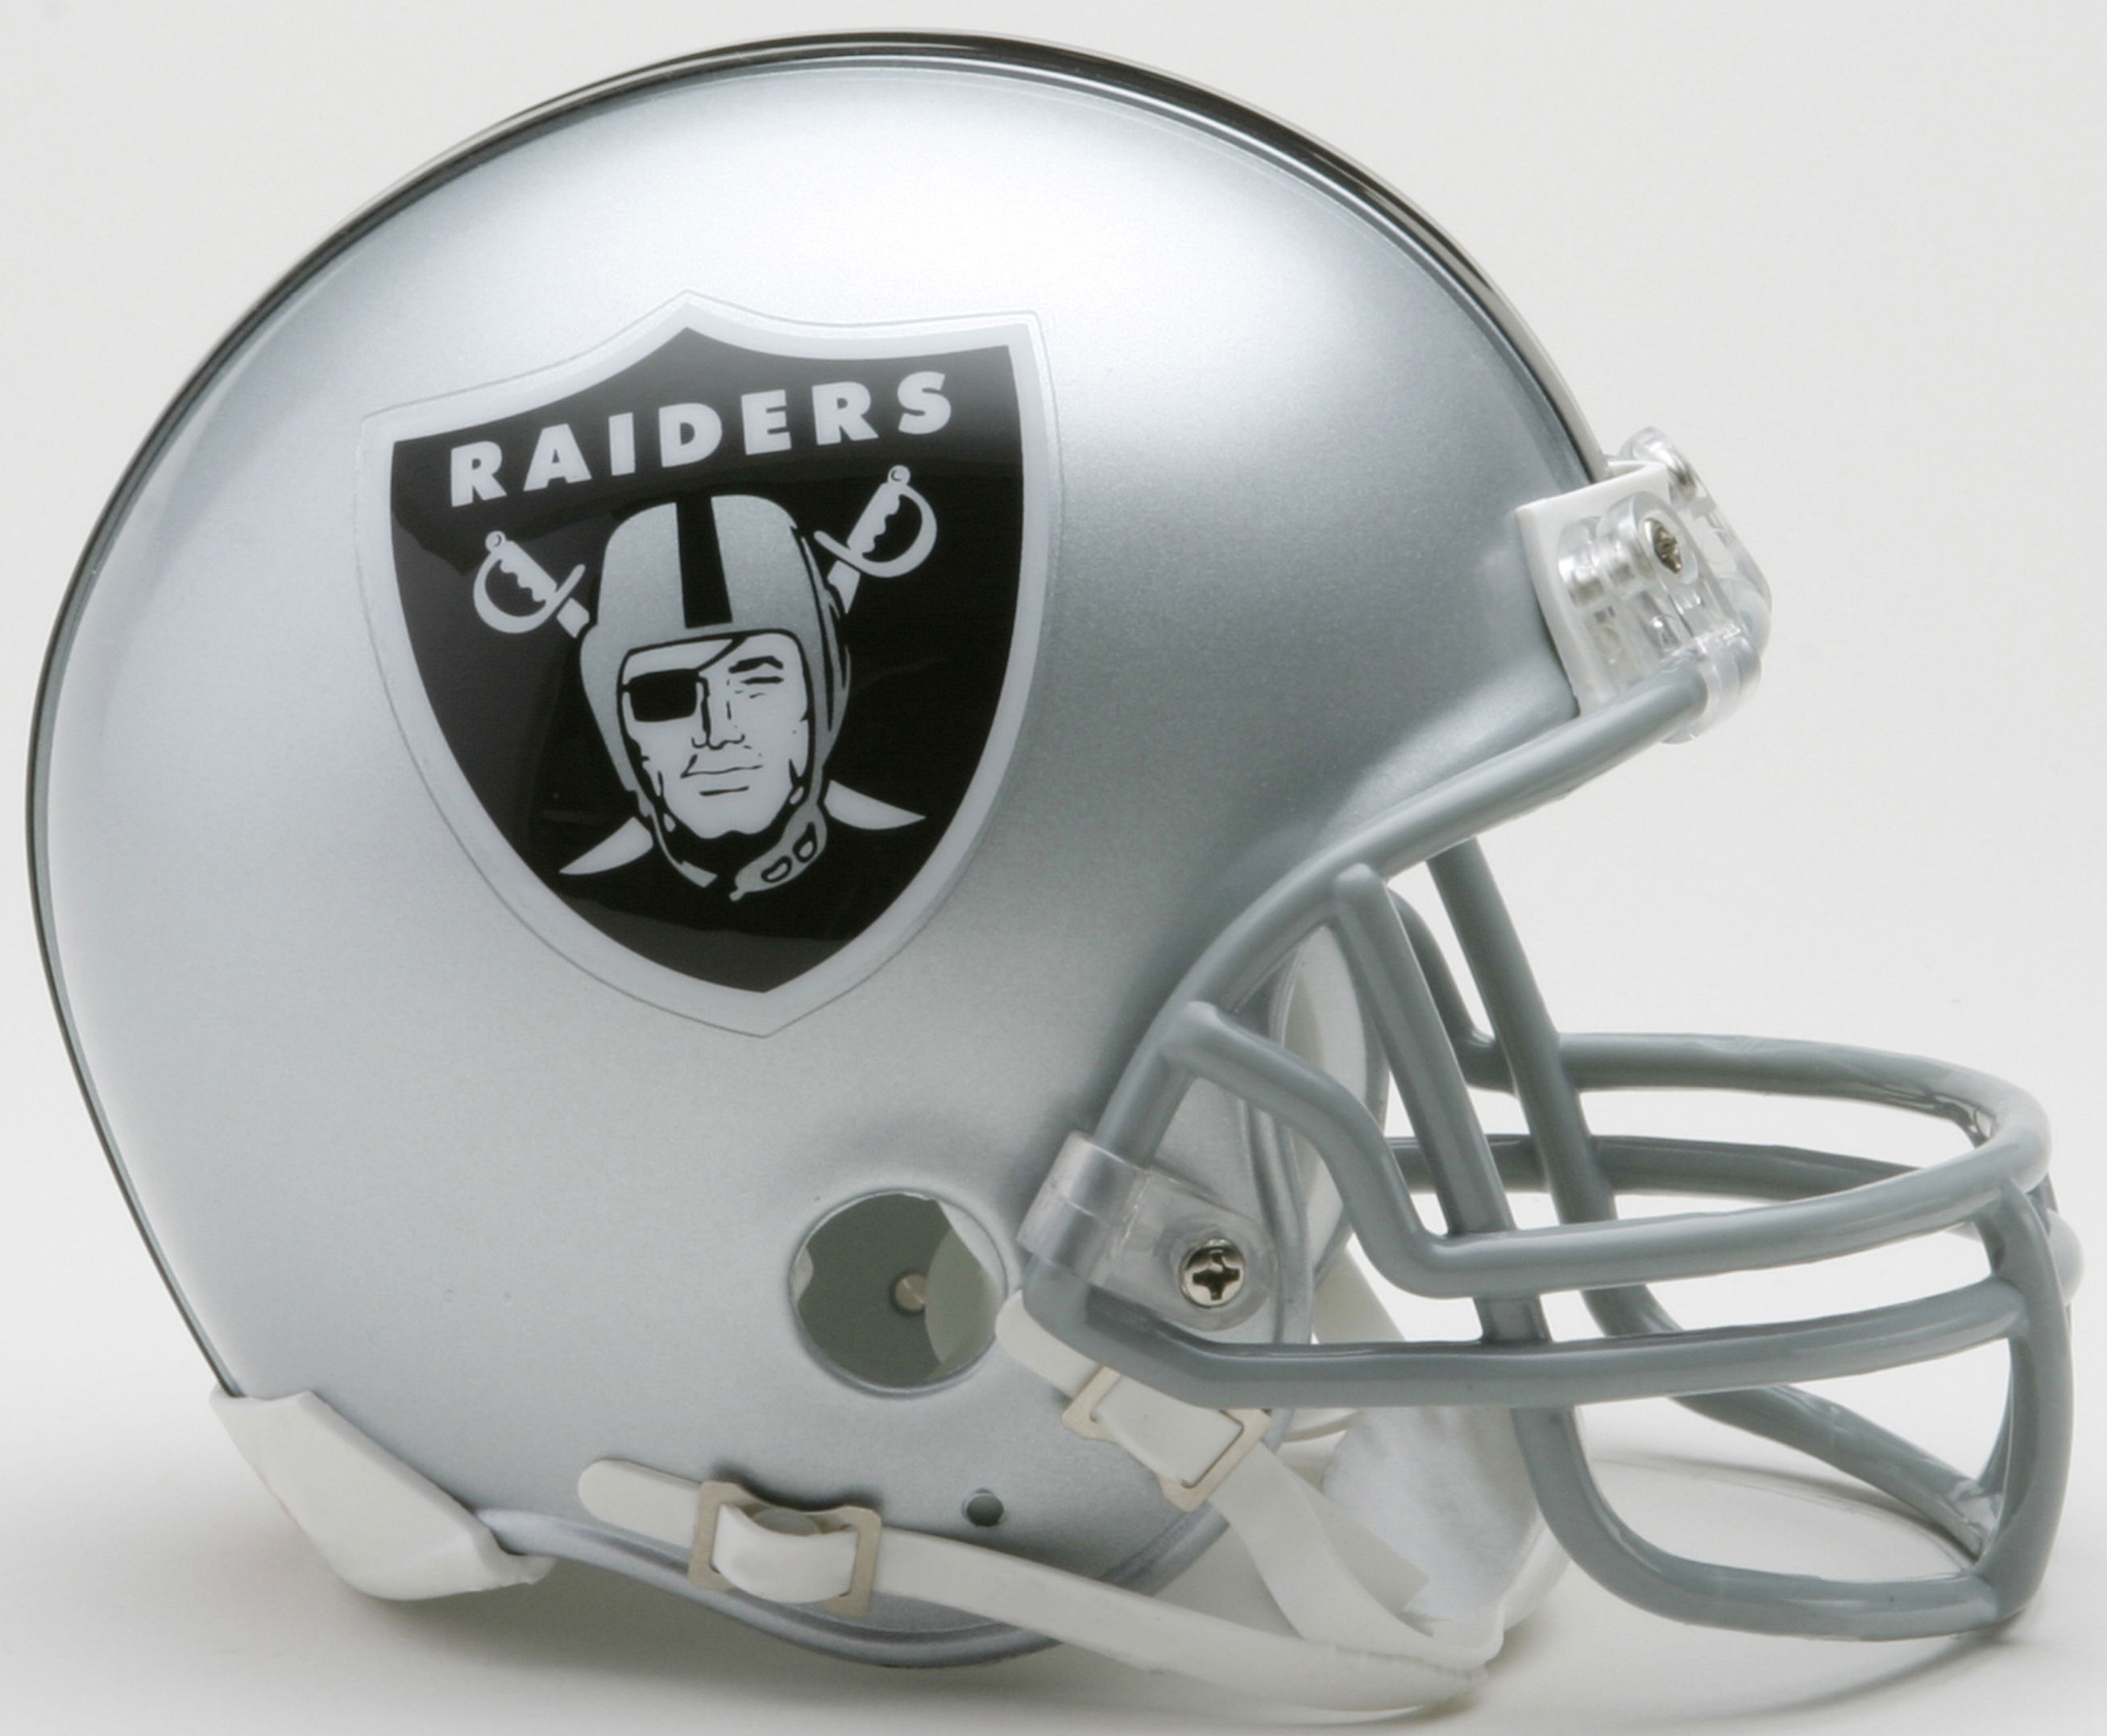 Oakland Raiders NFL Mini Football Helmet